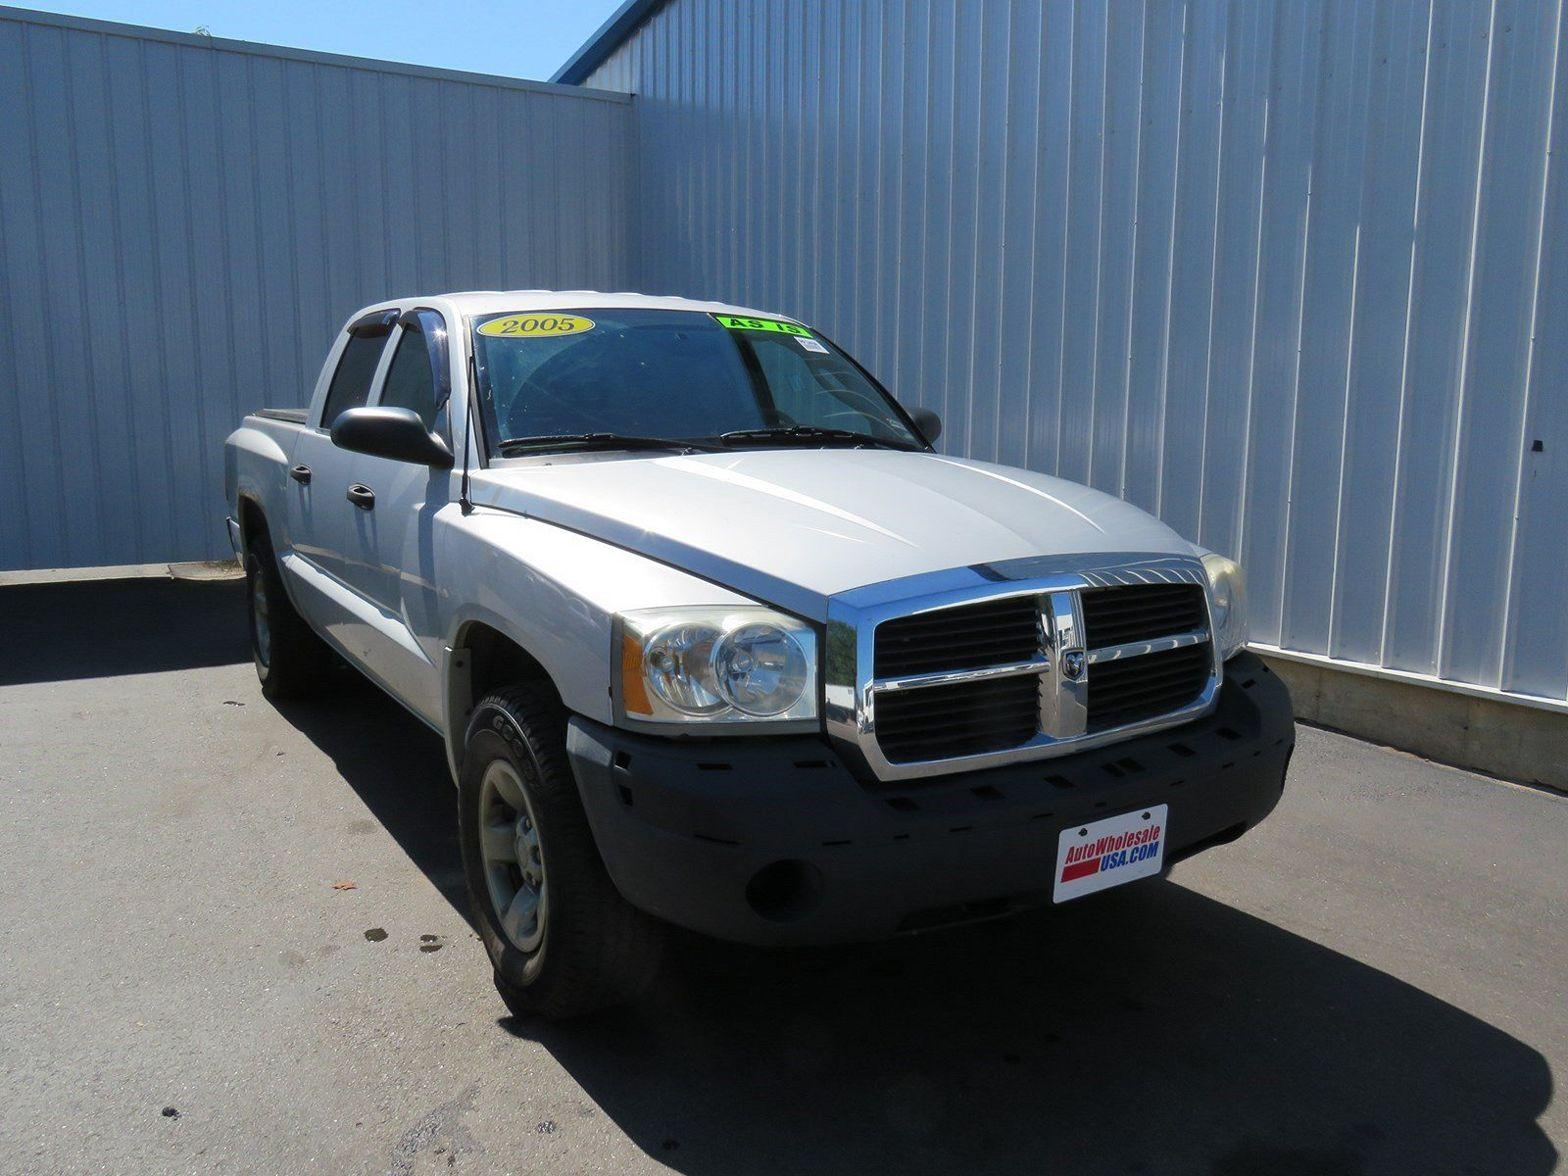 2005 Dodge Dakota $998